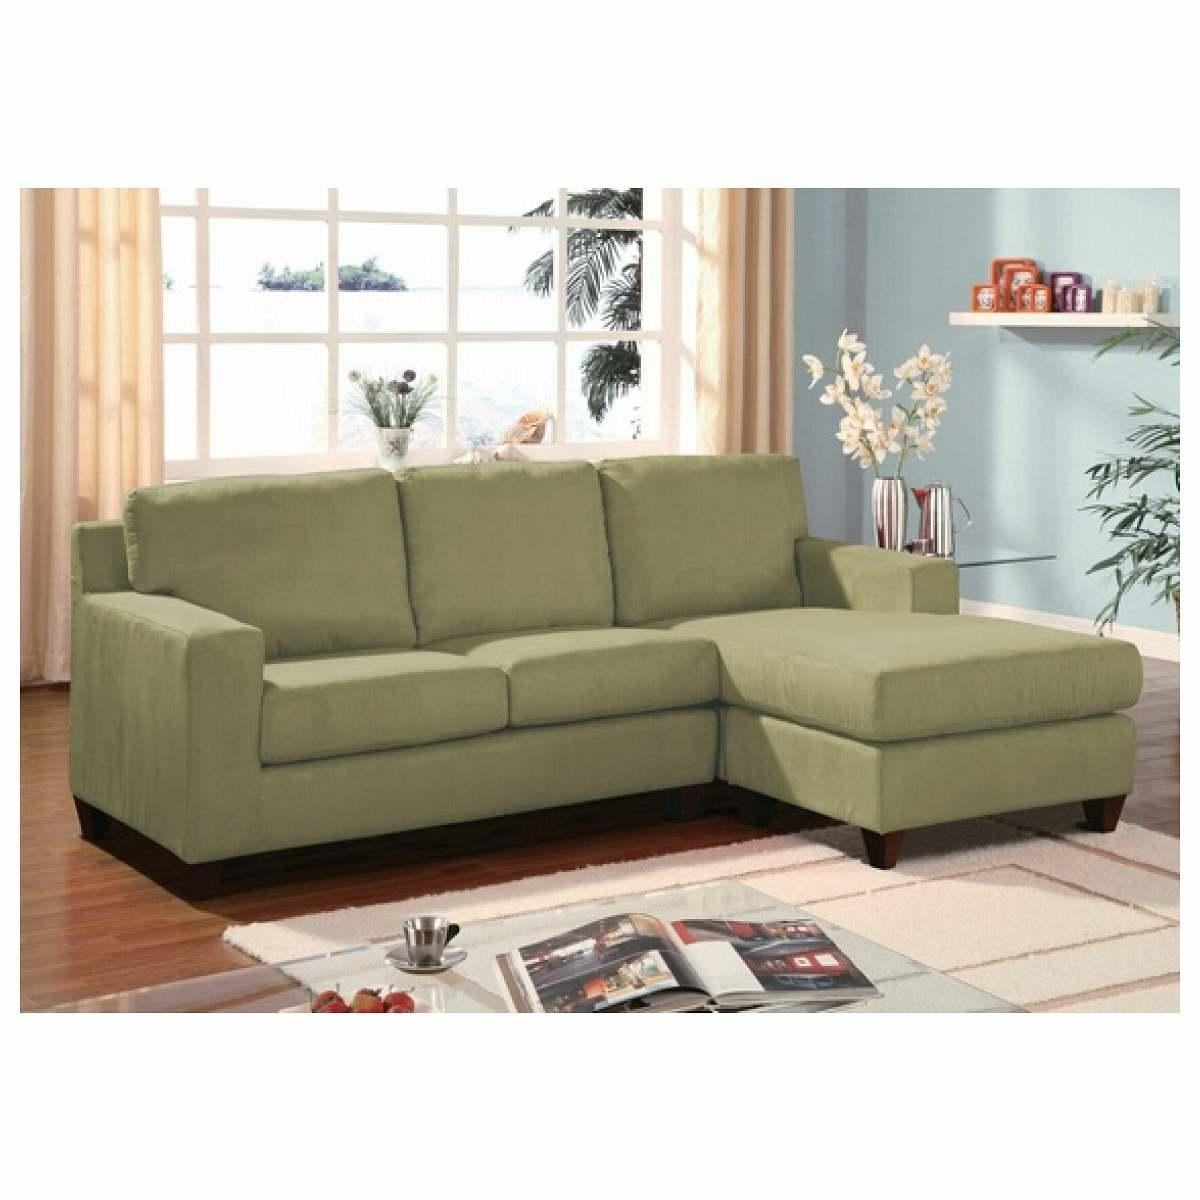 Furniture Home : Green Microfiber Reversible Sectional Sofa With In Apartment Sectional Sofa With Chaise (View 15 of 15)